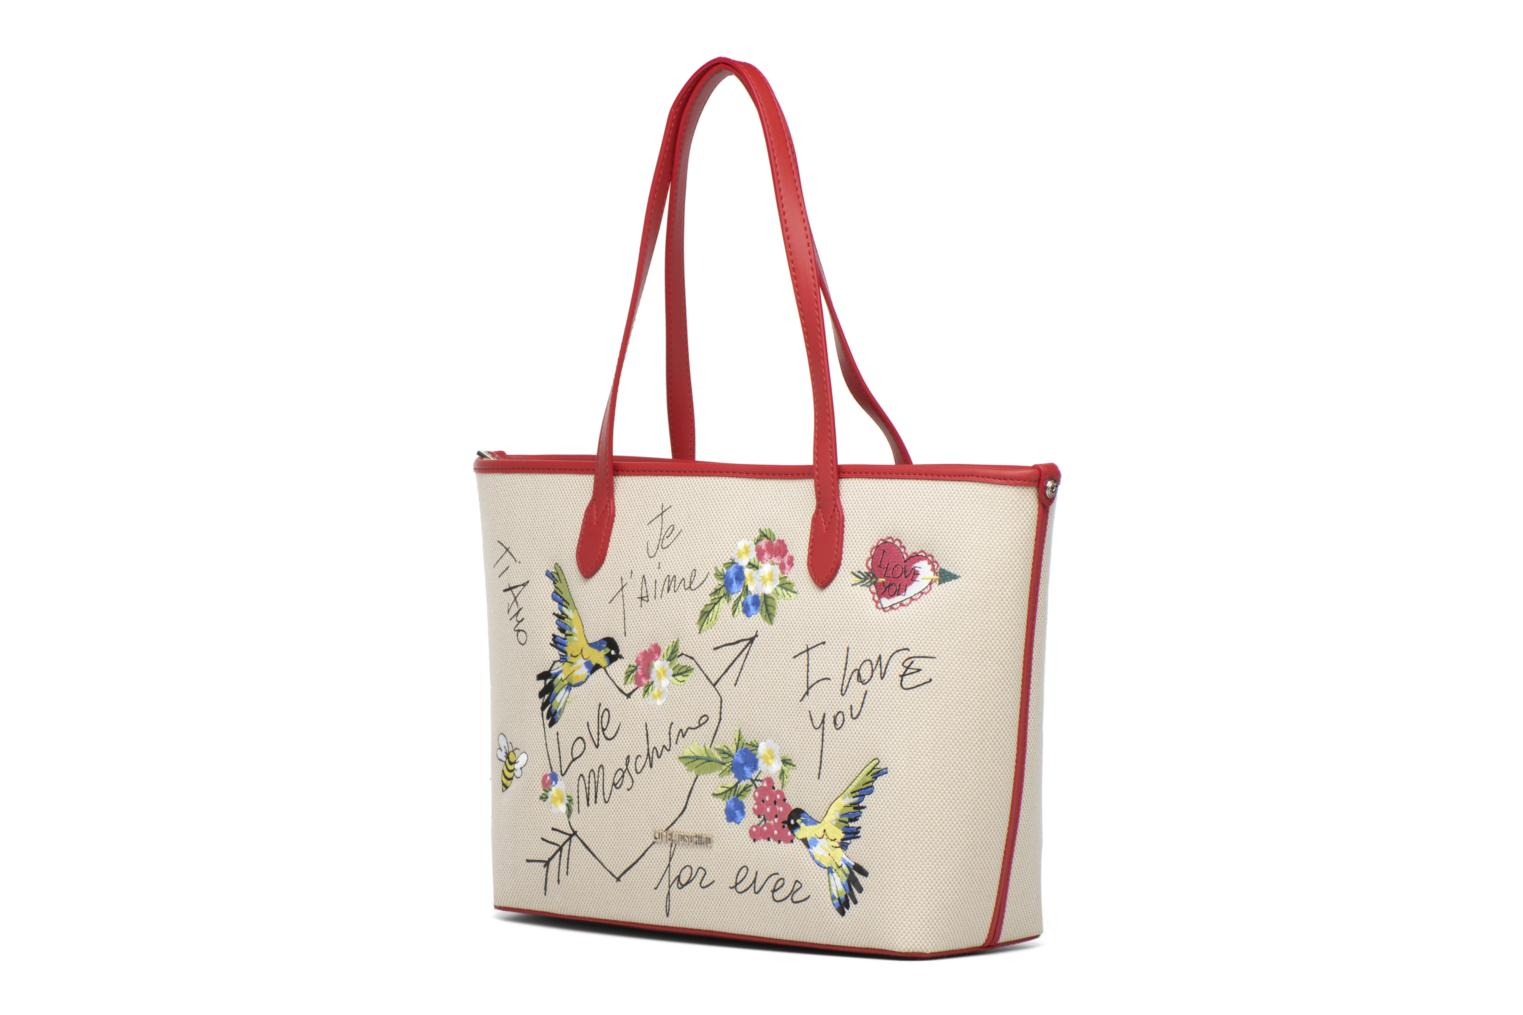 JC4276PP03 10A NATURAL CANVAS RED